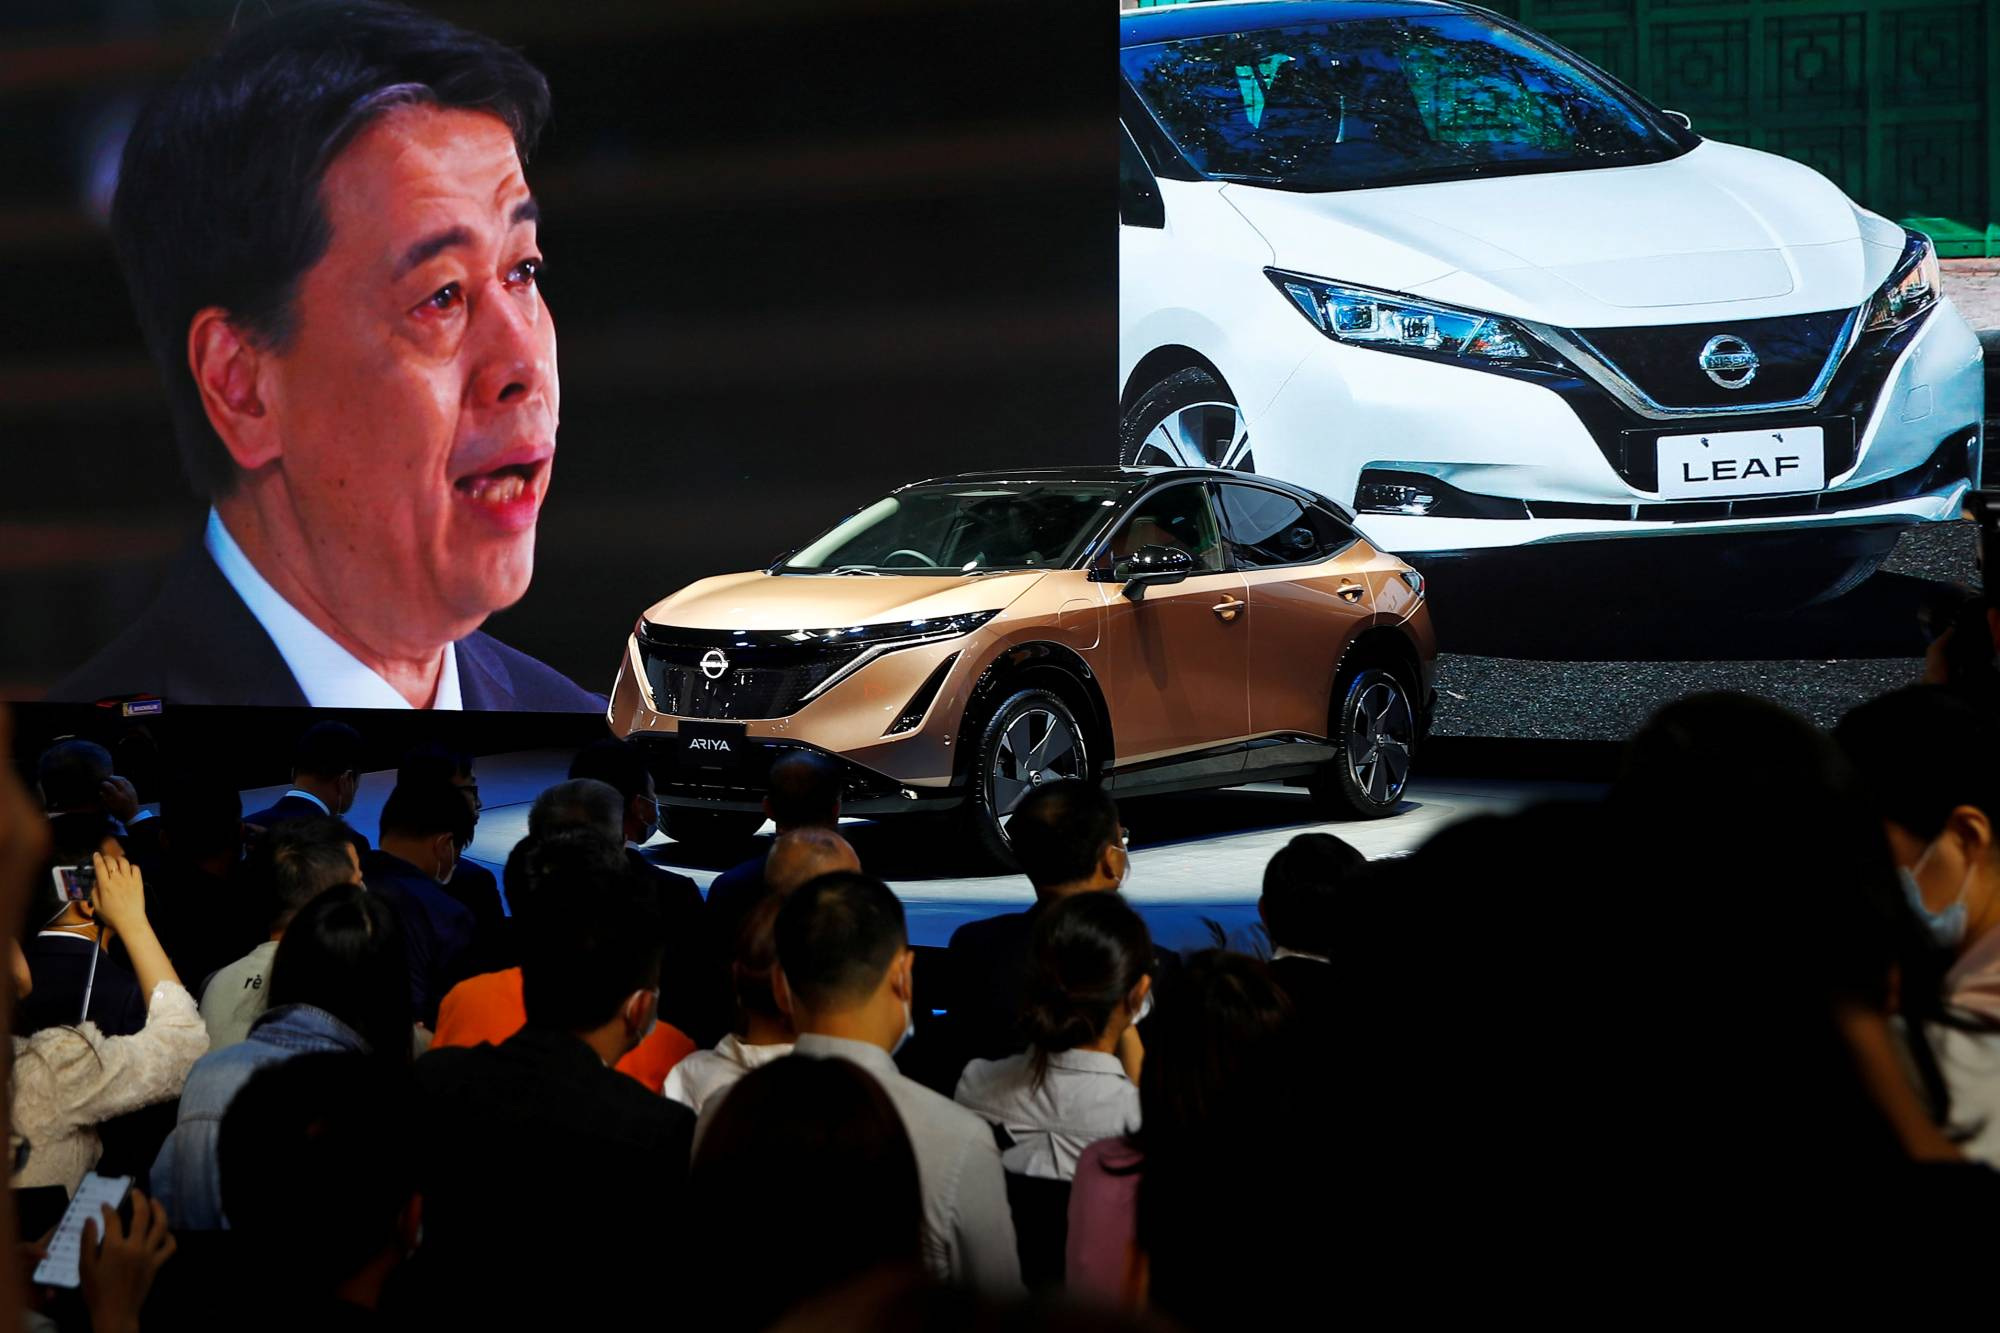 Nissan Chief Executive Officer Makoto Uchida speaks at a Nissan booth via video link during the presentation of the Ariya at the Beijing International Automotive Exhibition in Beijing in September 2020. | REUTERS